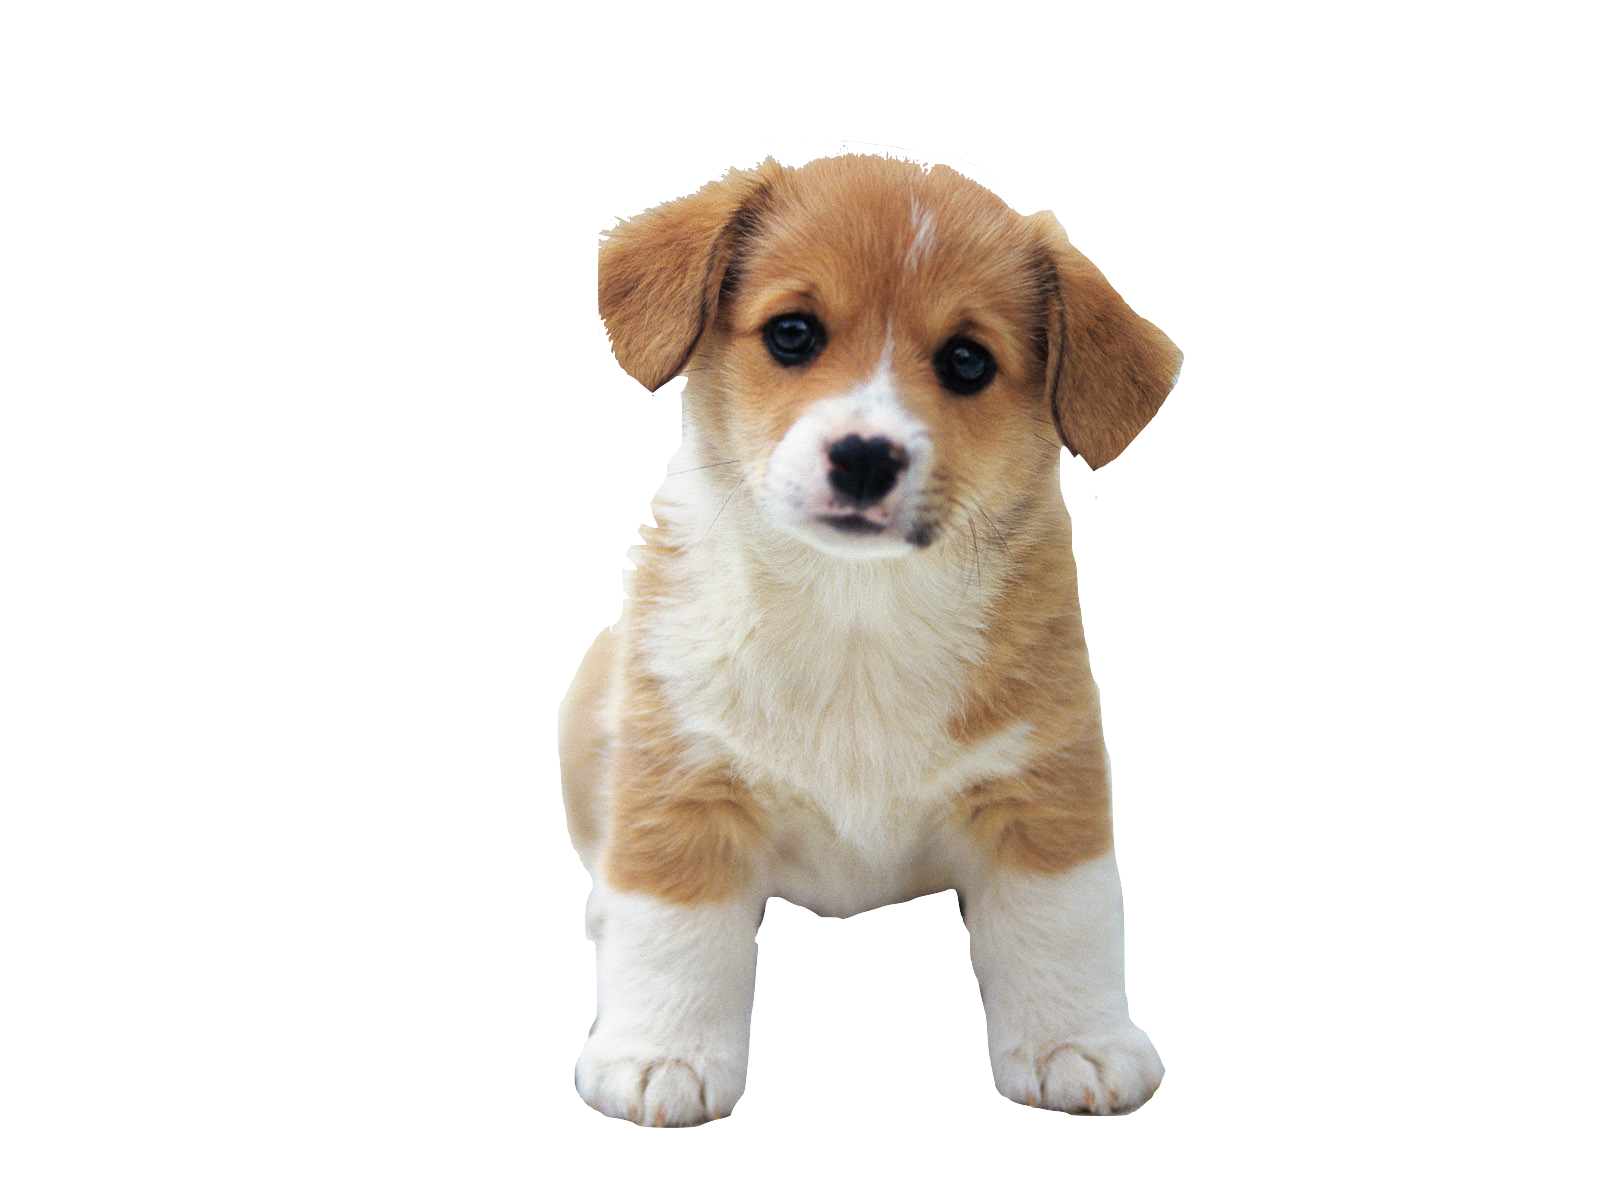 puppy png transparent puppy png images pluspng free clip art of dogs playing free clipart of dog balloon in parade